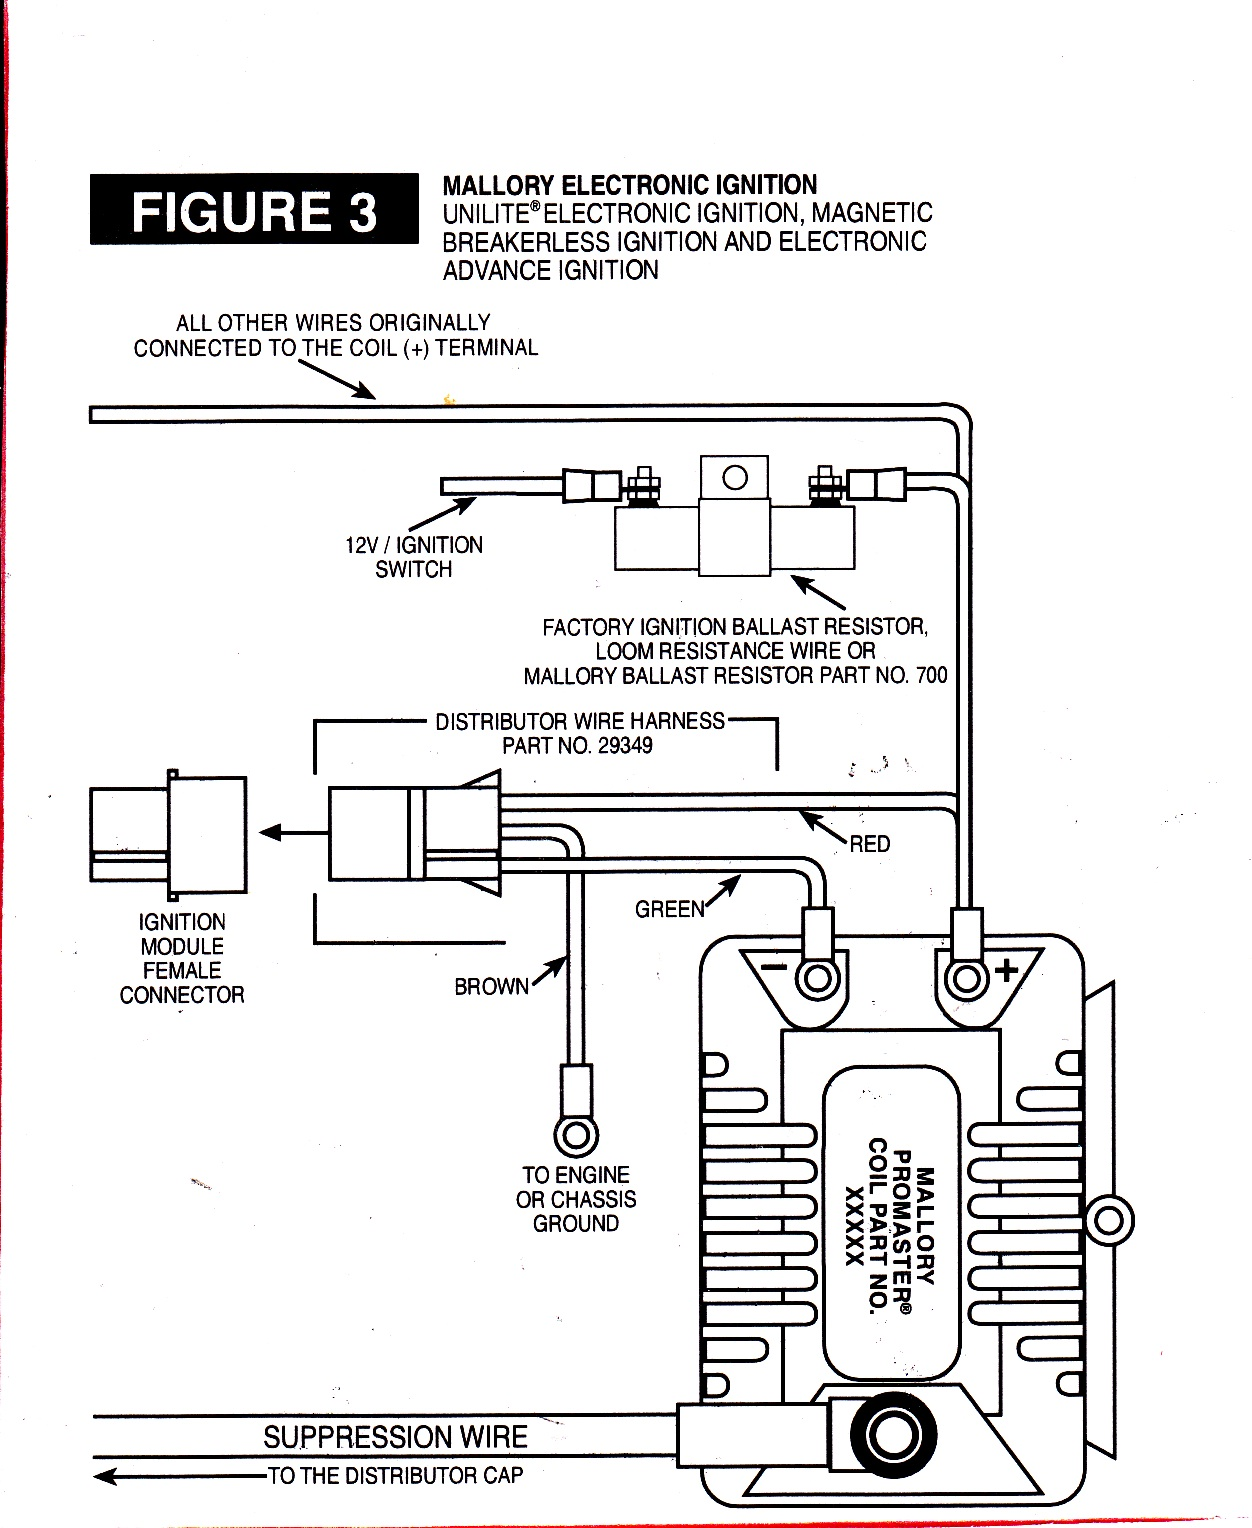 blowing ign acc 20 amp fuses at box the h a m b mallory unilite module wiring diagram at sewacar.co